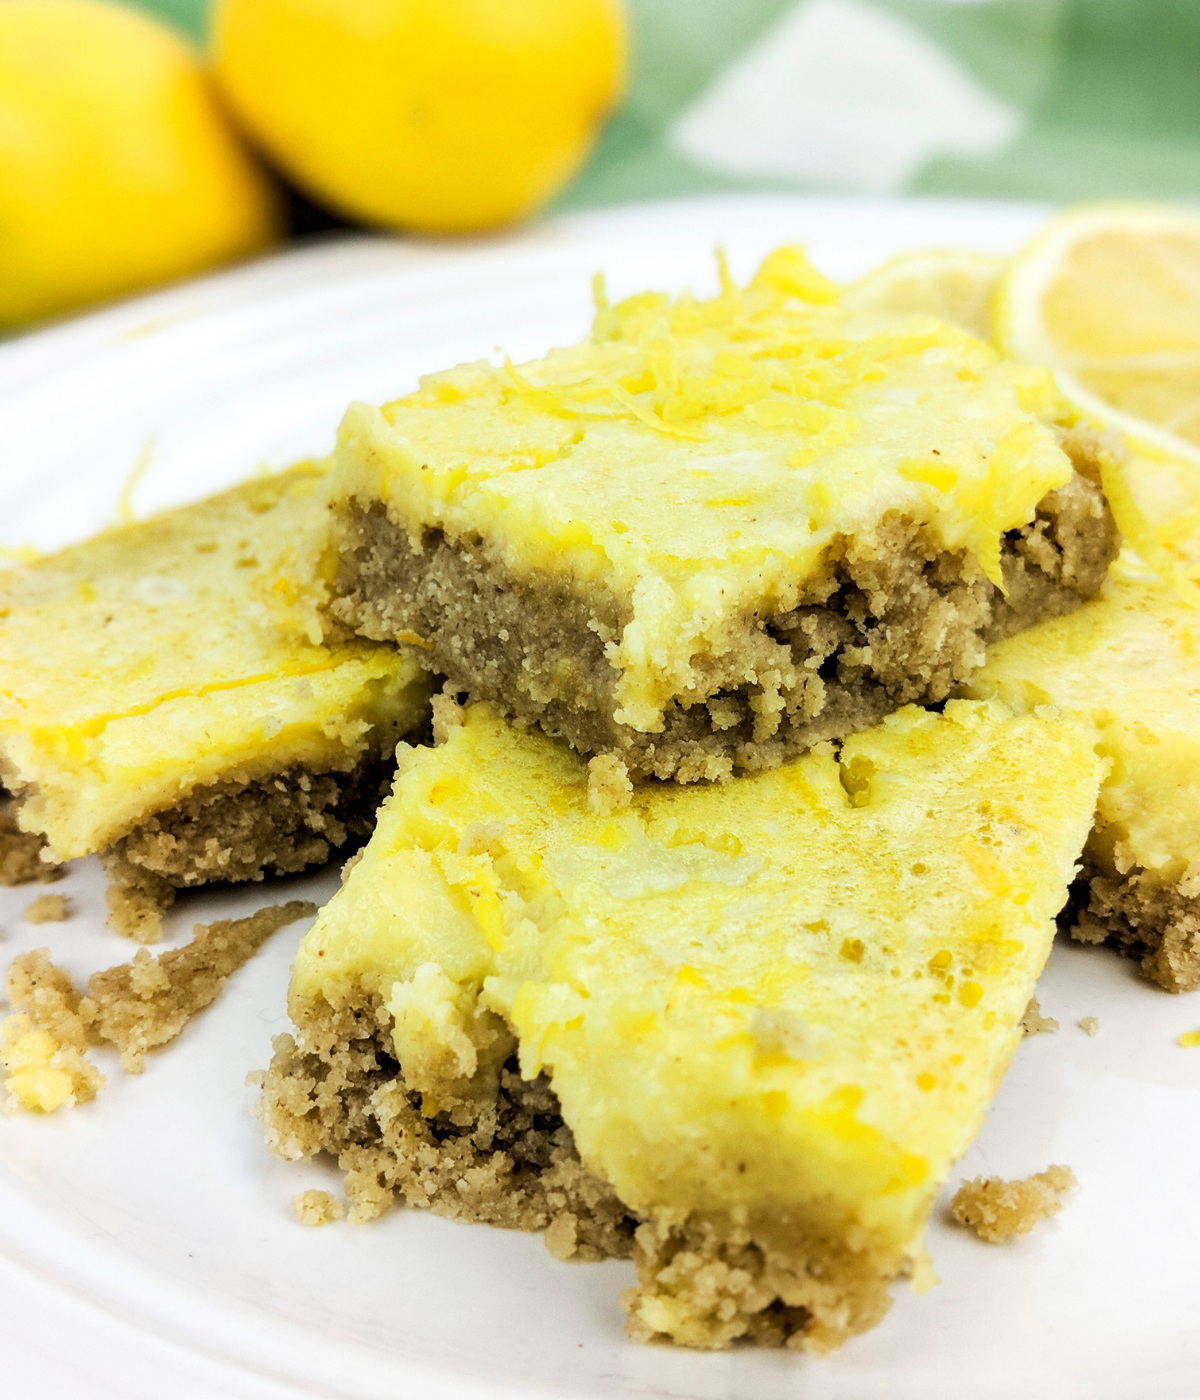 Lemon bars for the Plant Paradox diet--lectin-free and sugar-free.